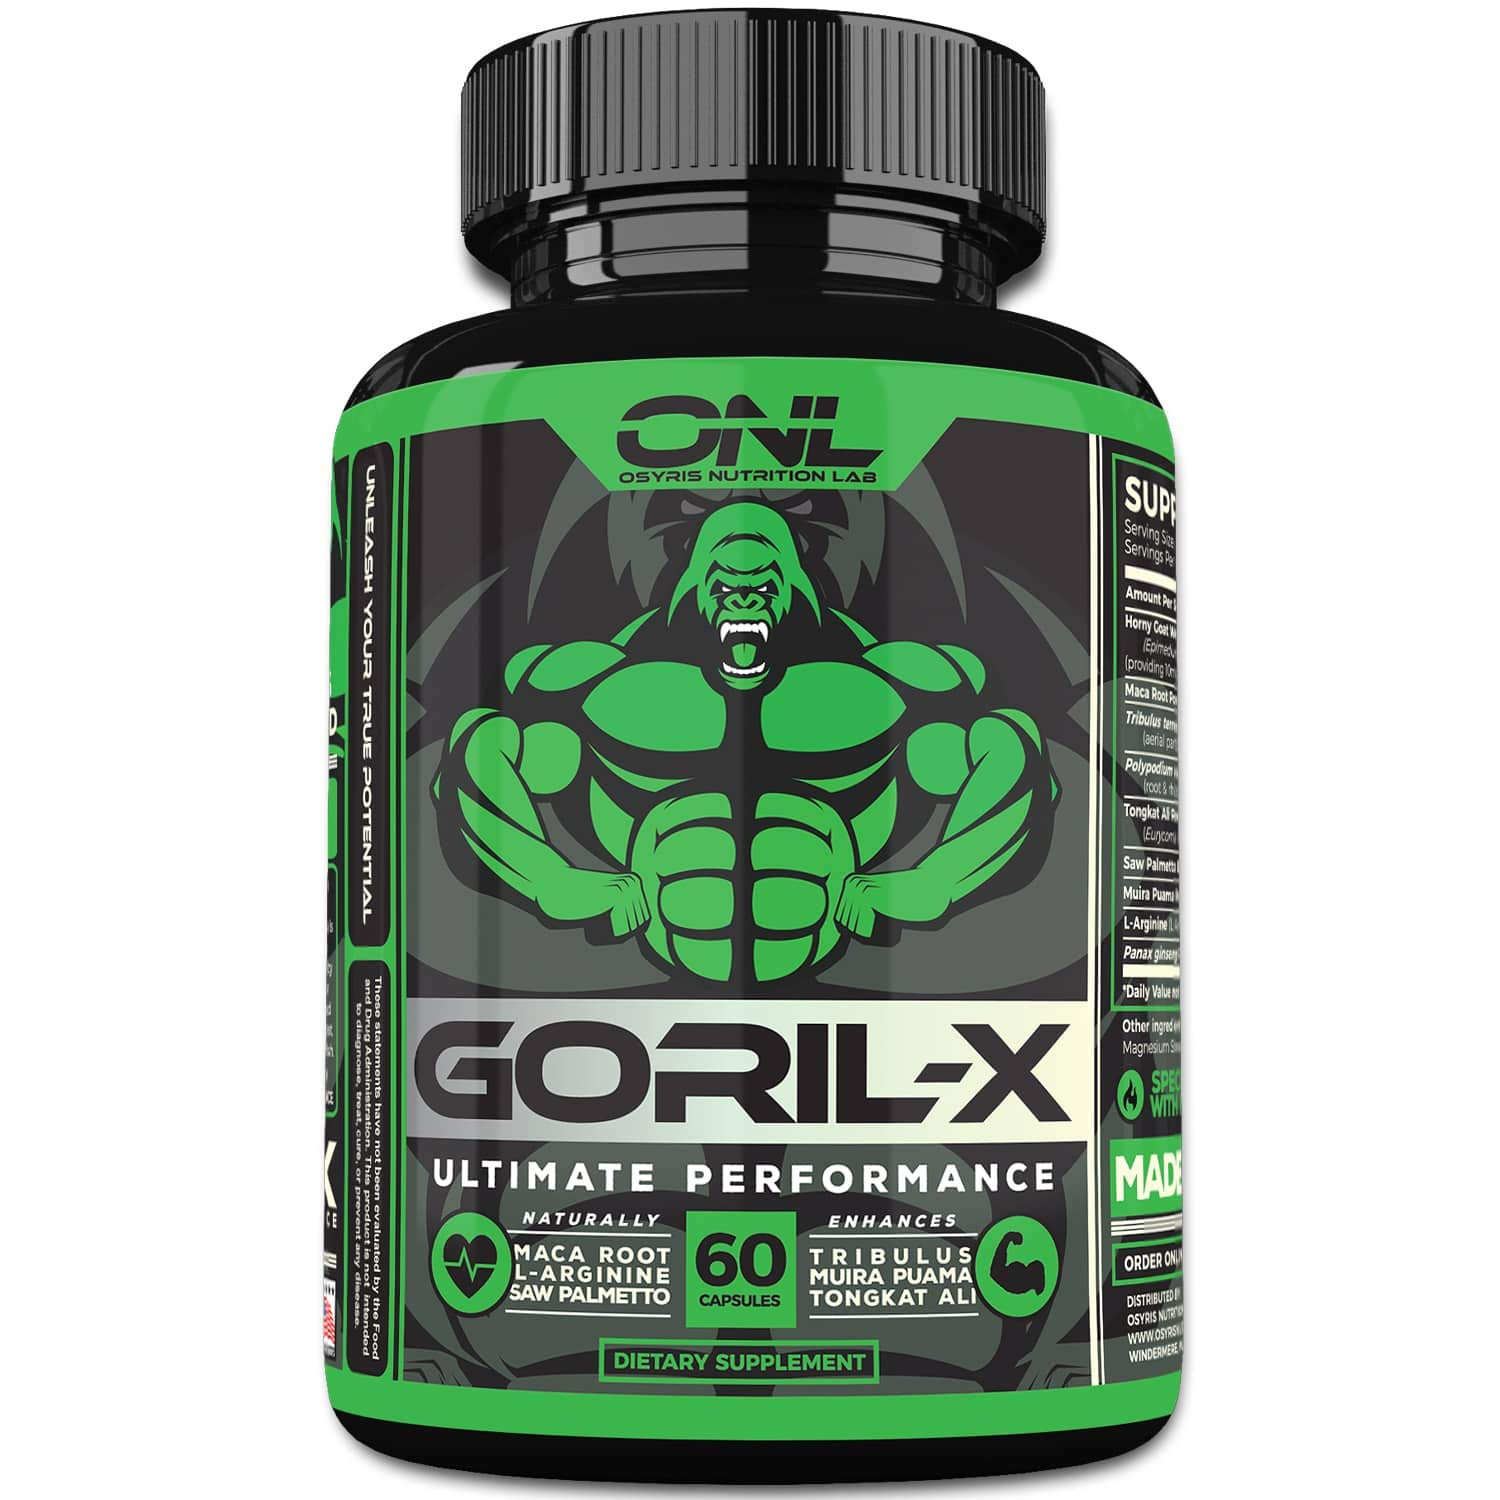 GORIL-X | Men's Performance Pills (60 Capsules) #1 Formula | All Natural Enlargement Booster | Increase Size, Strength, Energy & Endurance | 1000mg Enhancing Horny Goat Weed | 1 Month Supply